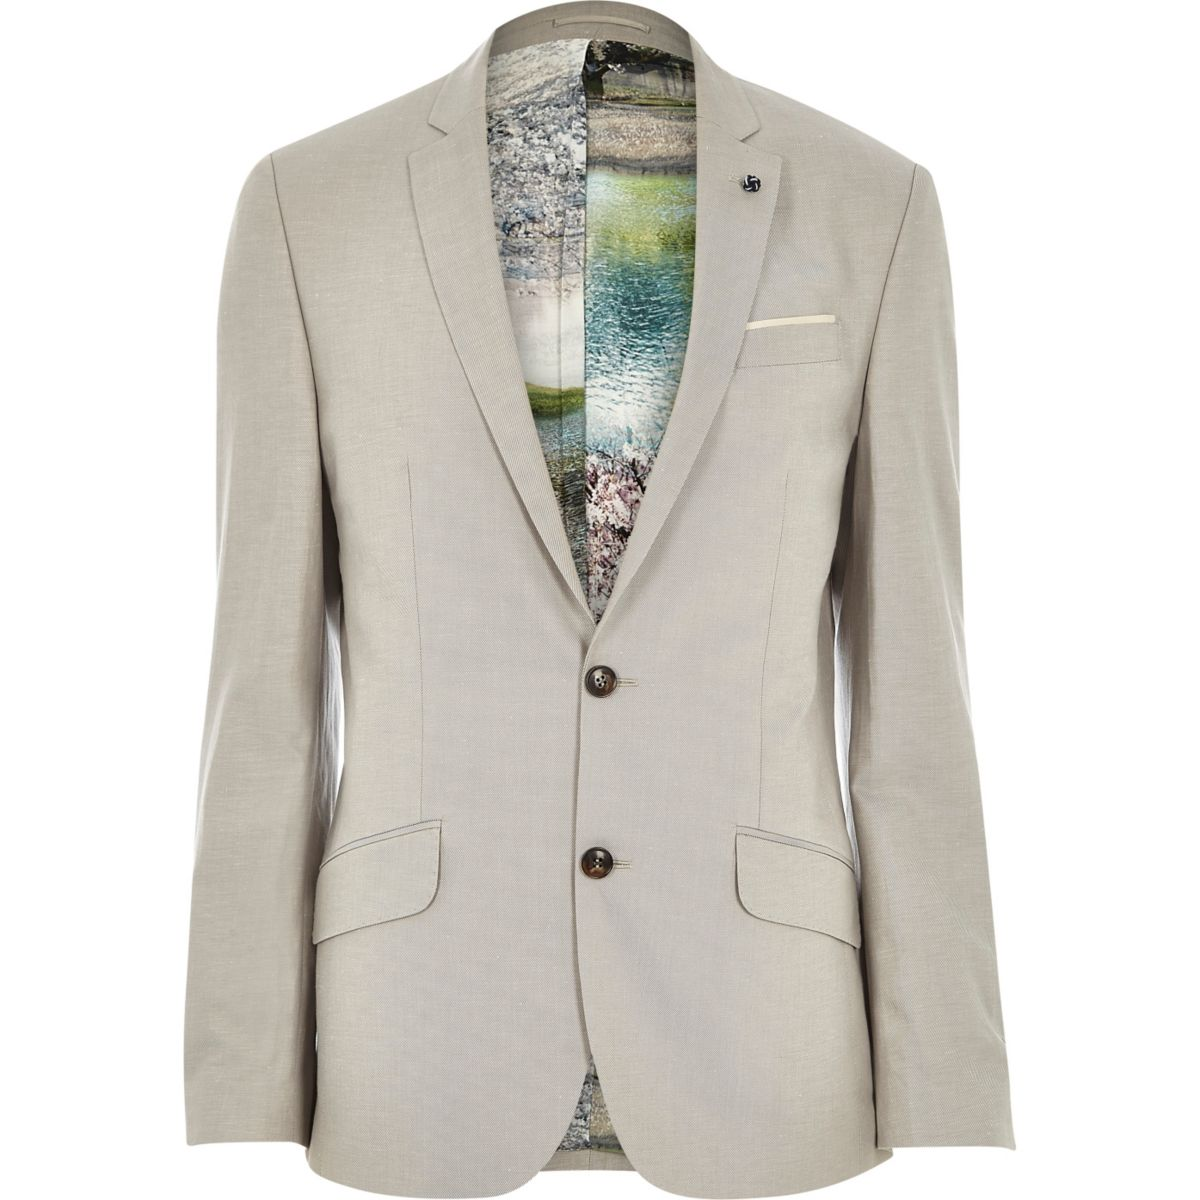 Beige linen-blend print slim suit jacket